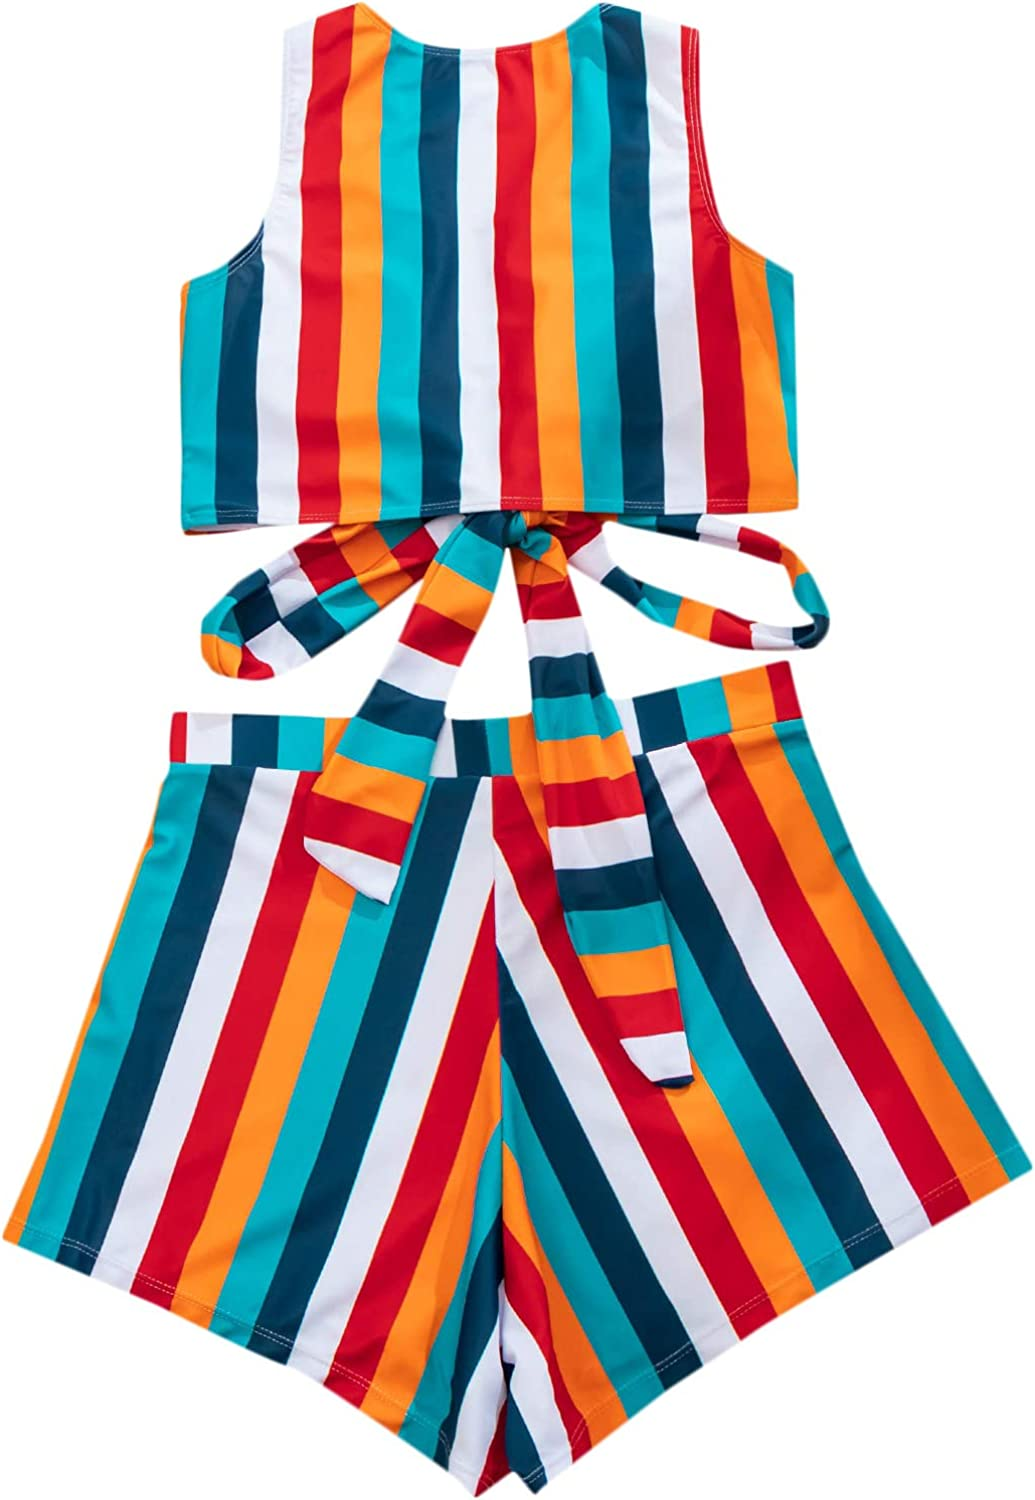 SOLY HUX Women's Striped Tie Knot Front High Waisted Bikini Bathing Suit 2 Piece Swimsuits